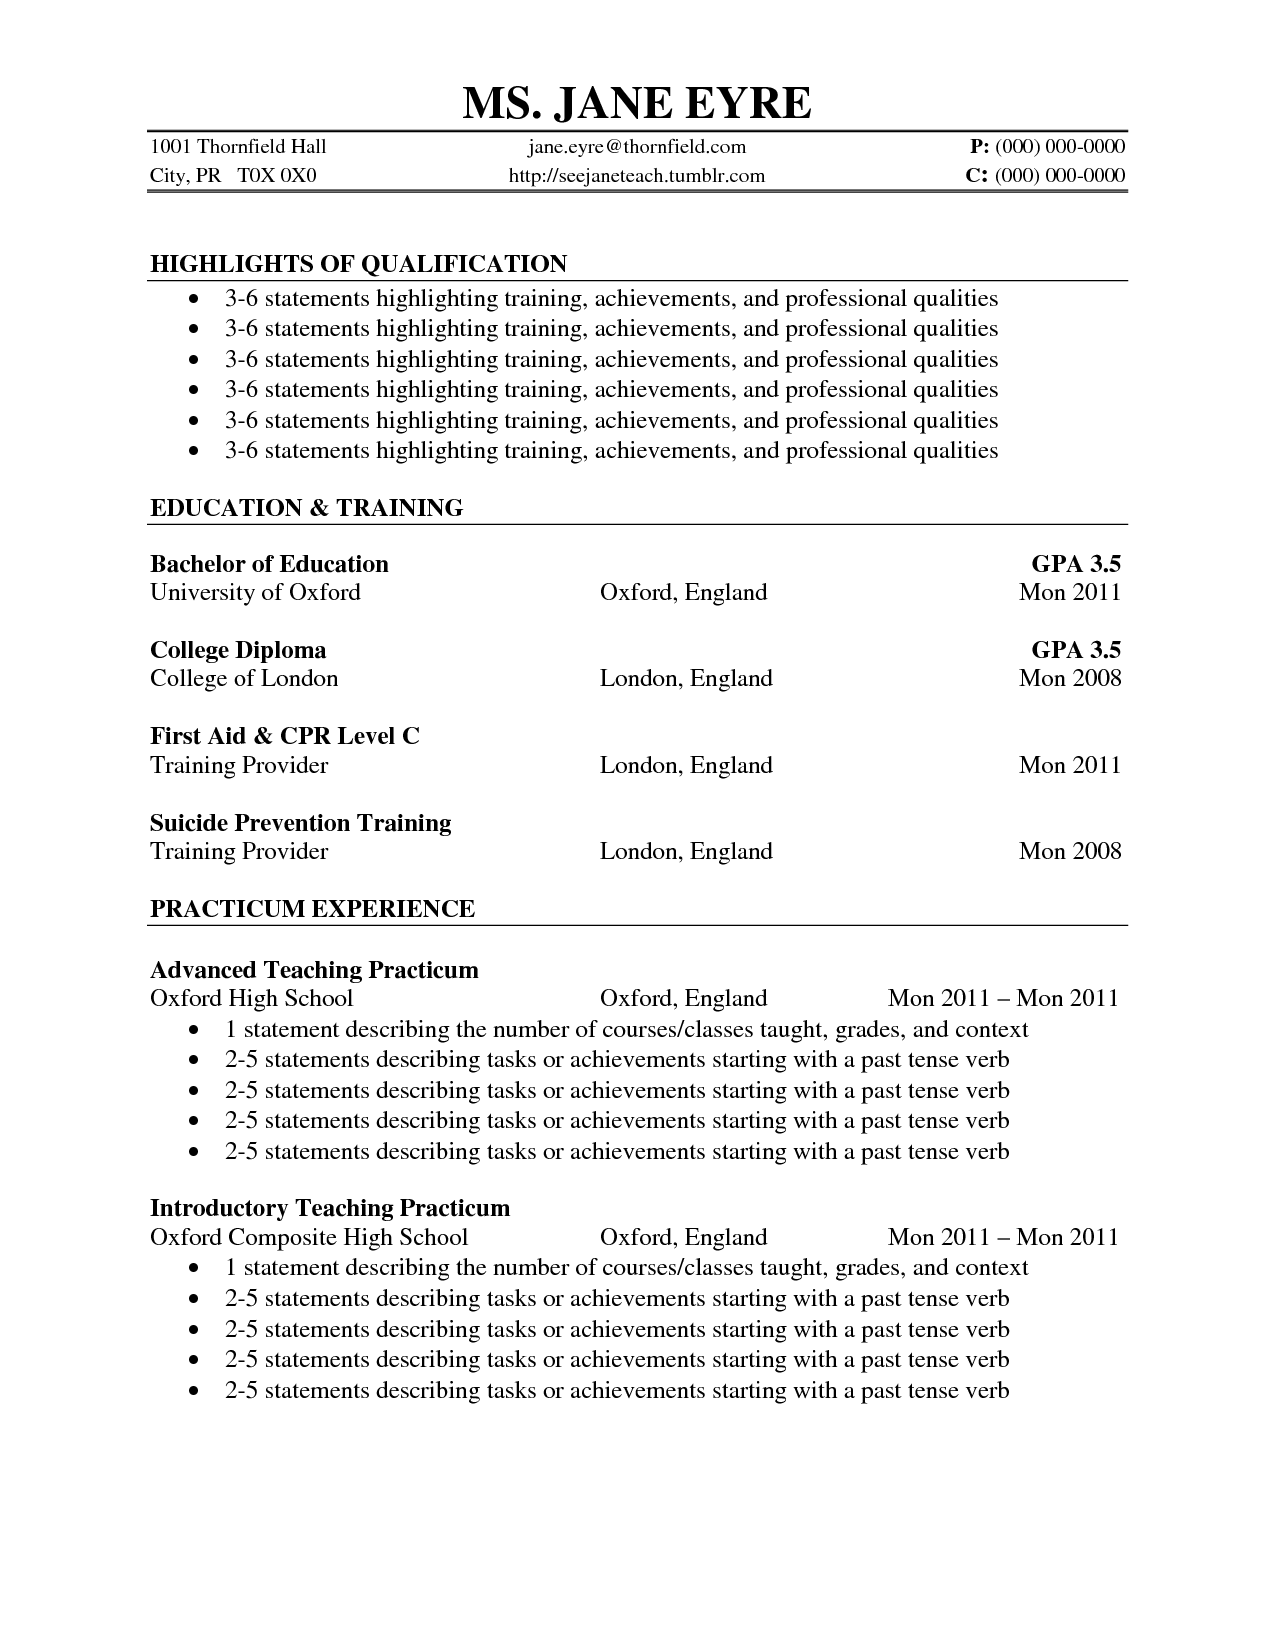 Resume Work Cv Template Volunteer Work Custovolunteer Work On Resume